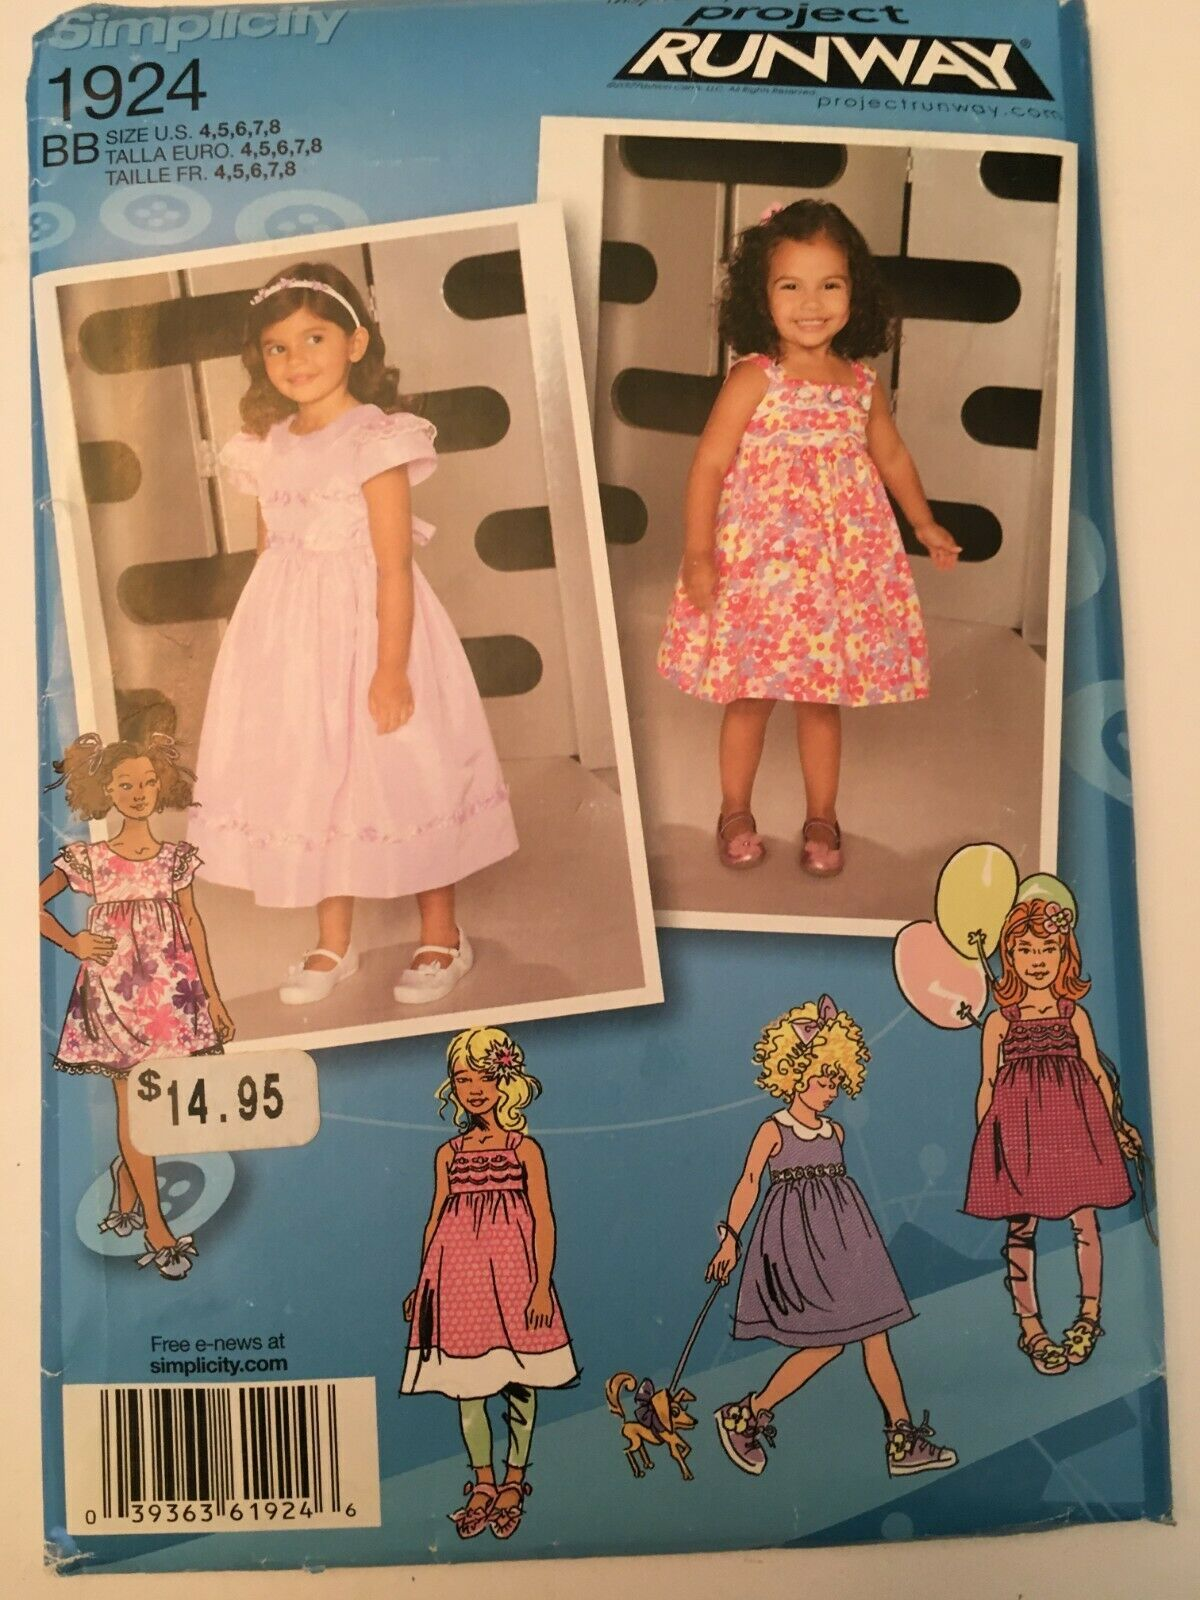 Primary image for Simplicity 1924 Project Runway Dress with Variations Pattern Sz 4,5,6,7,8 Uncut